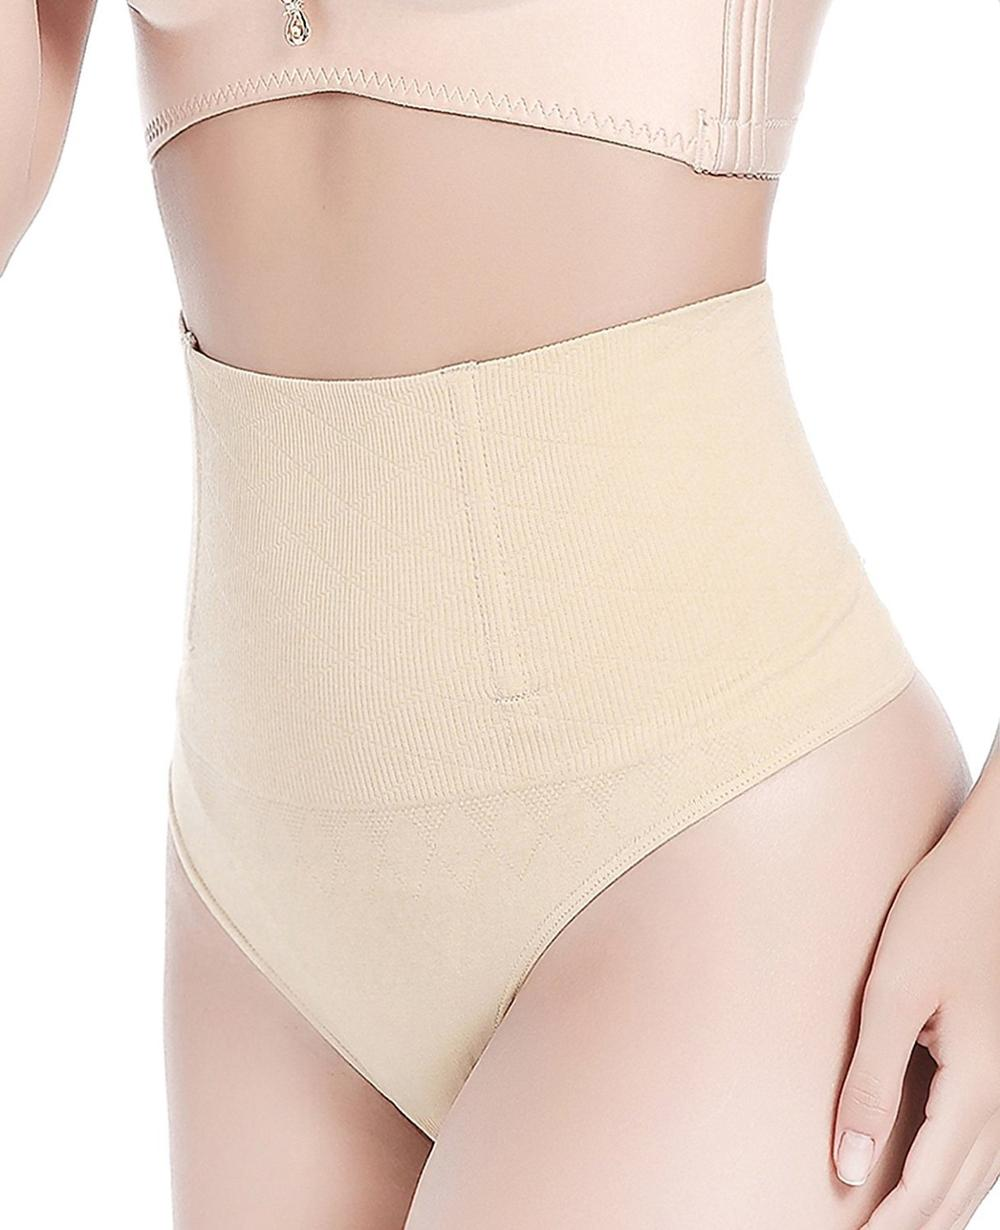 professional sale most desirable fashion wide selection of colors High Waist Trainer Tummy Slimming Control Waist Cincher Body Shaper Thong  G-string Butt Lifter Seamless Panties Underwear - Buy Underwear,Butt Lift  ...